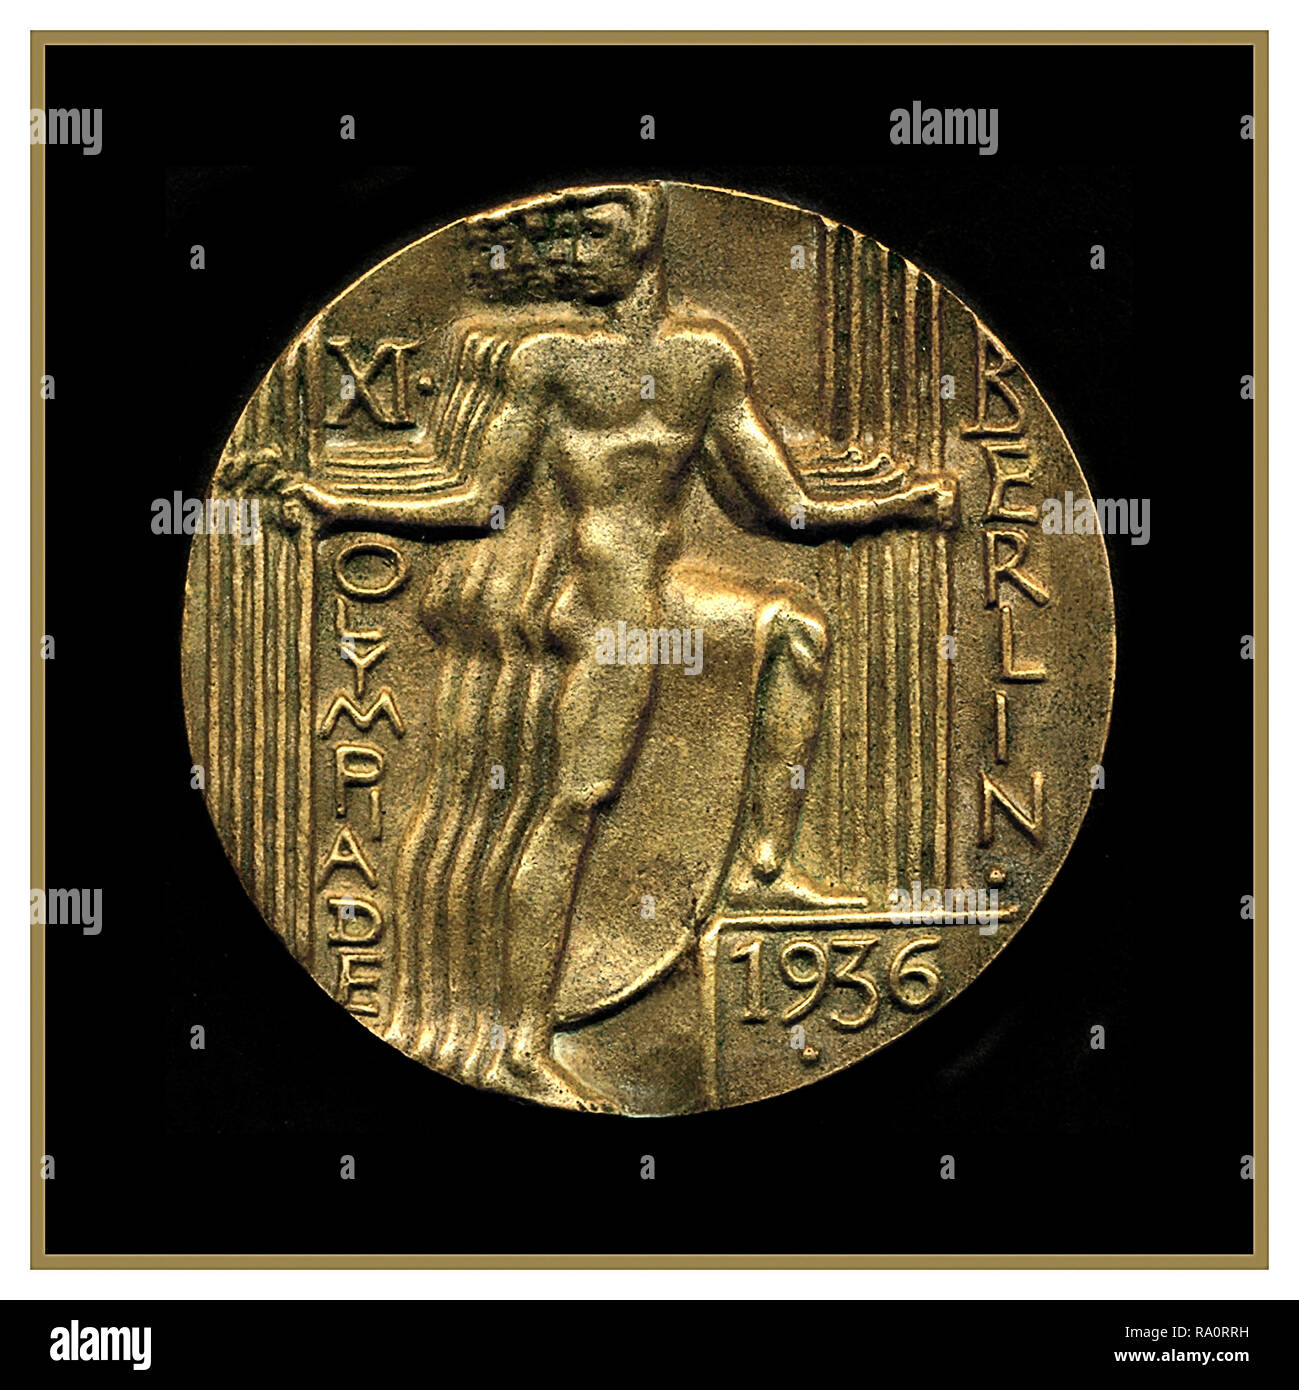 Olympic Games Berlin 1936 Gold Medal - official participation medal from the Olympic Games in Berlin 1936. - Stock Image